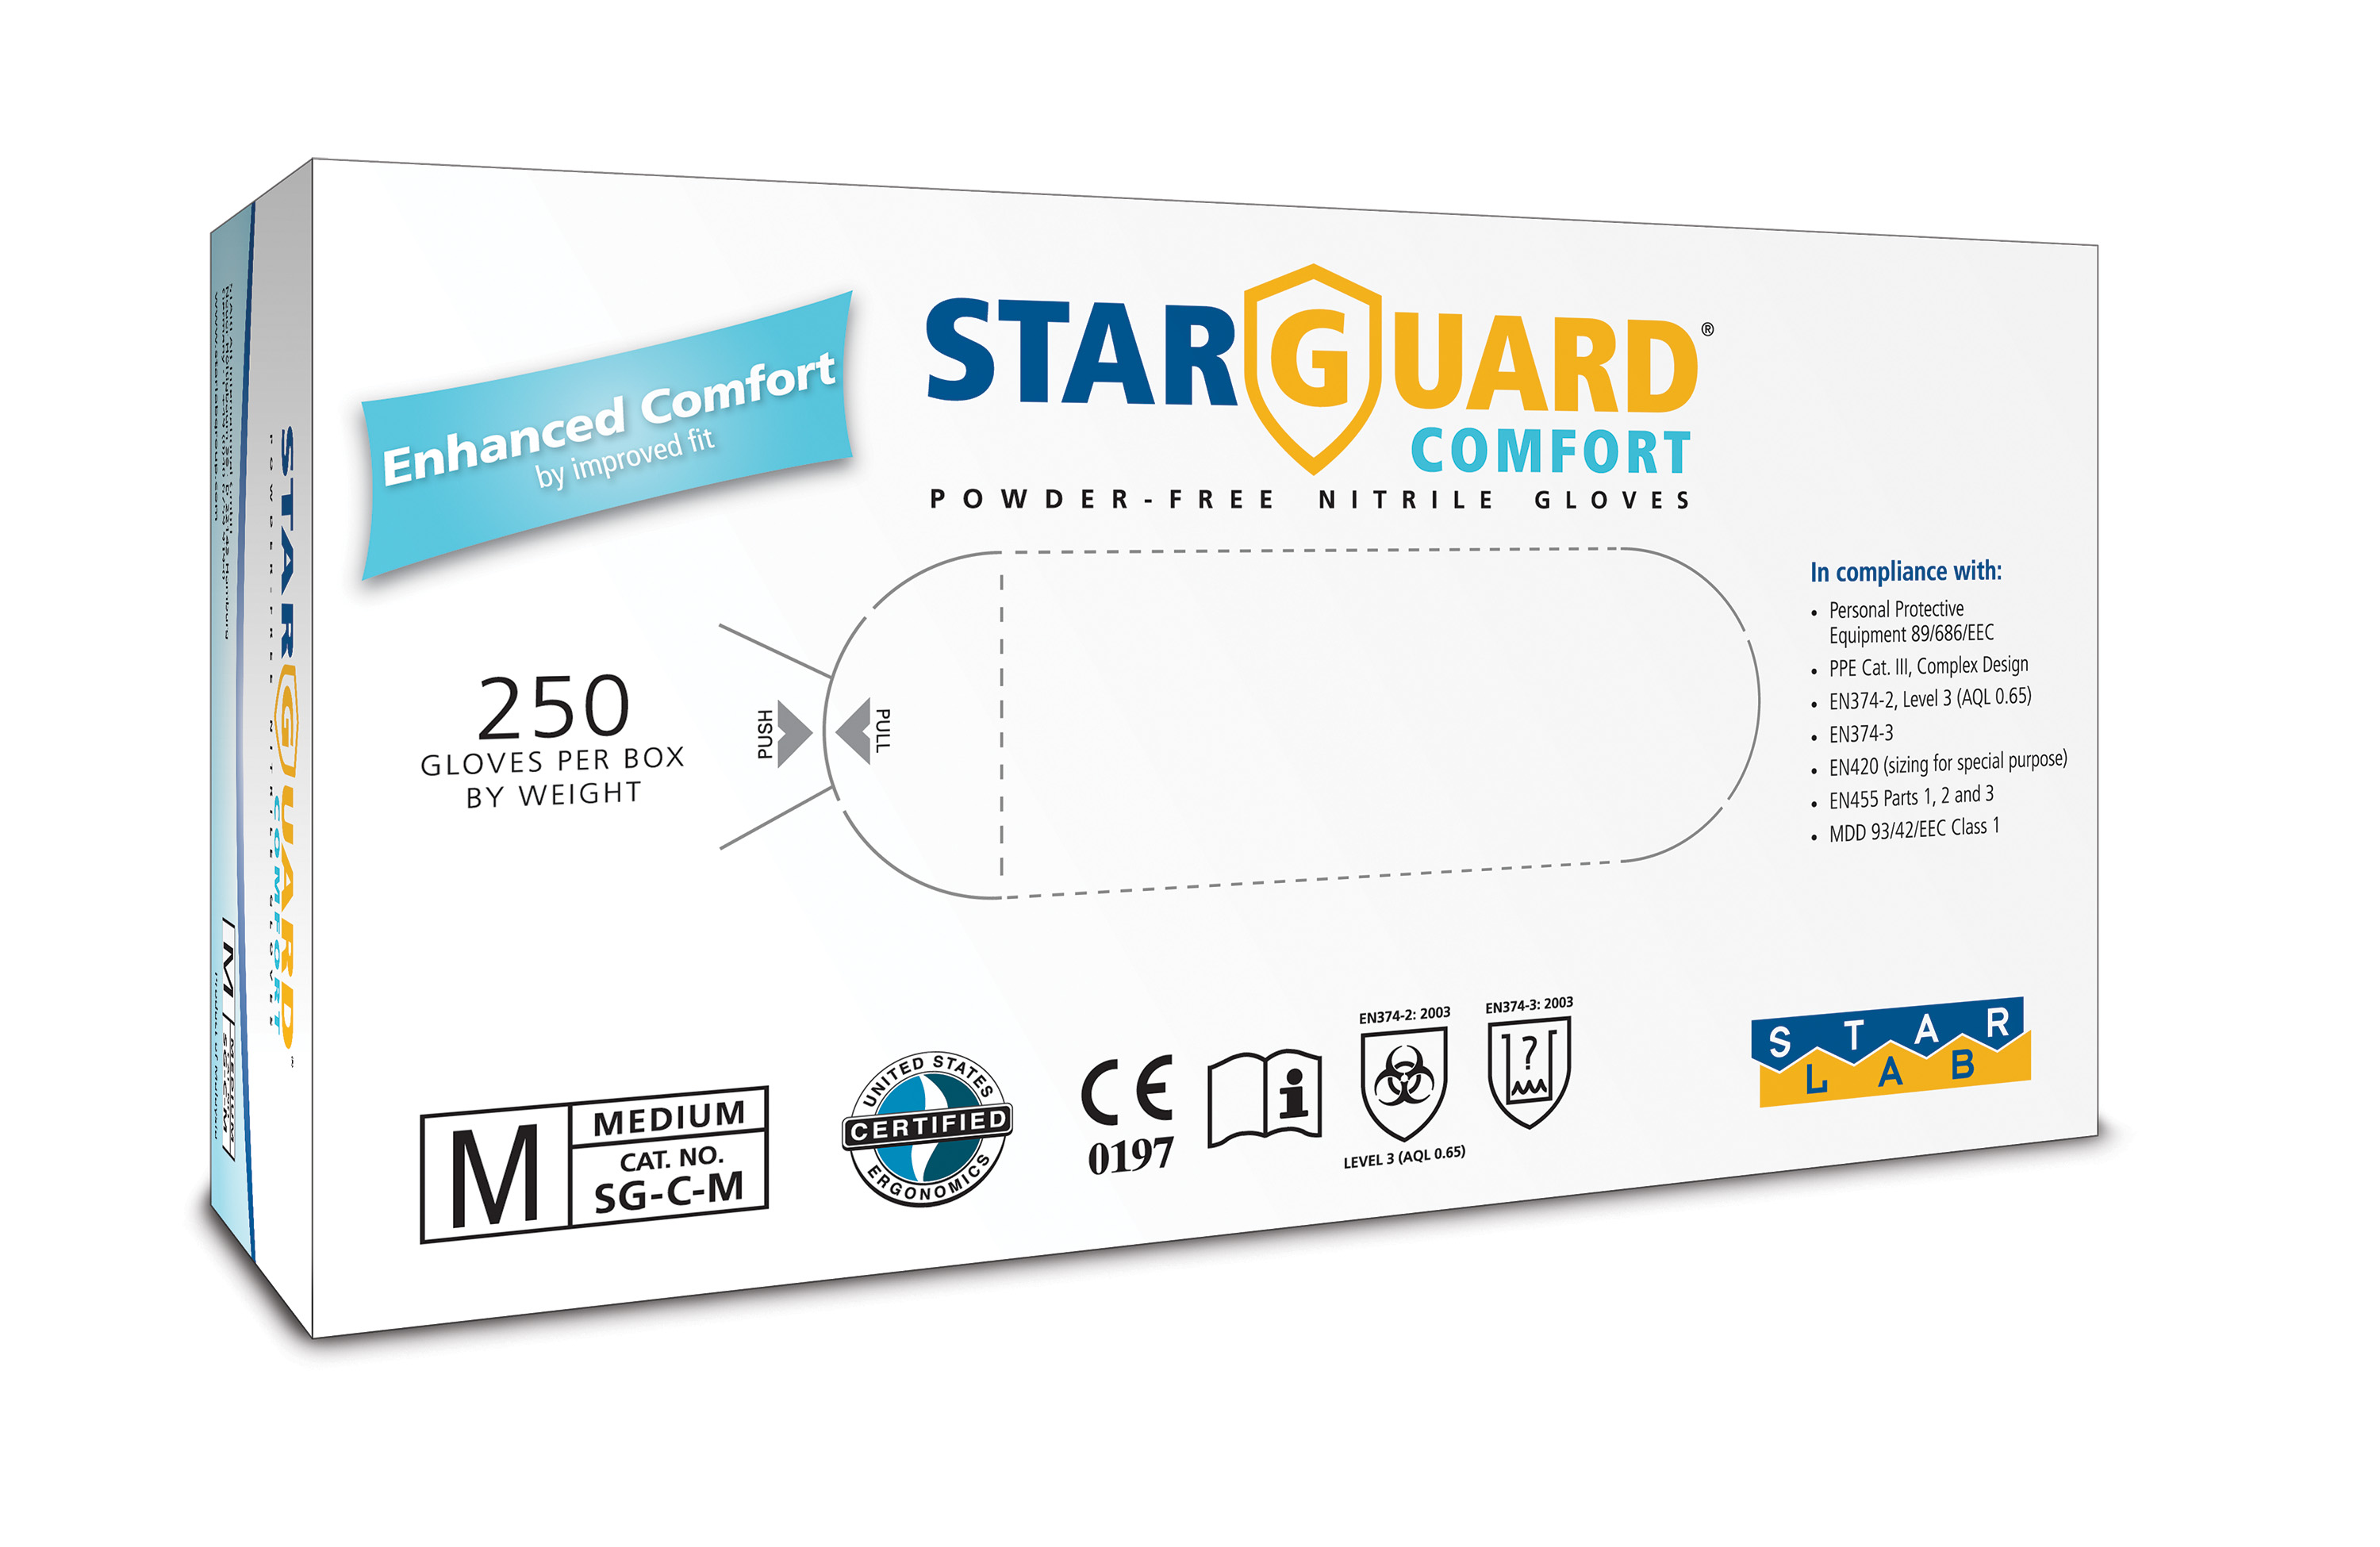 StarGuard COMFORT (feels like Latex)  Nitrile Gloves, Powder Free, Blue, Size XS, Pk/ 10 x 250 gloves  - just sFr. 5,85/100 gloves